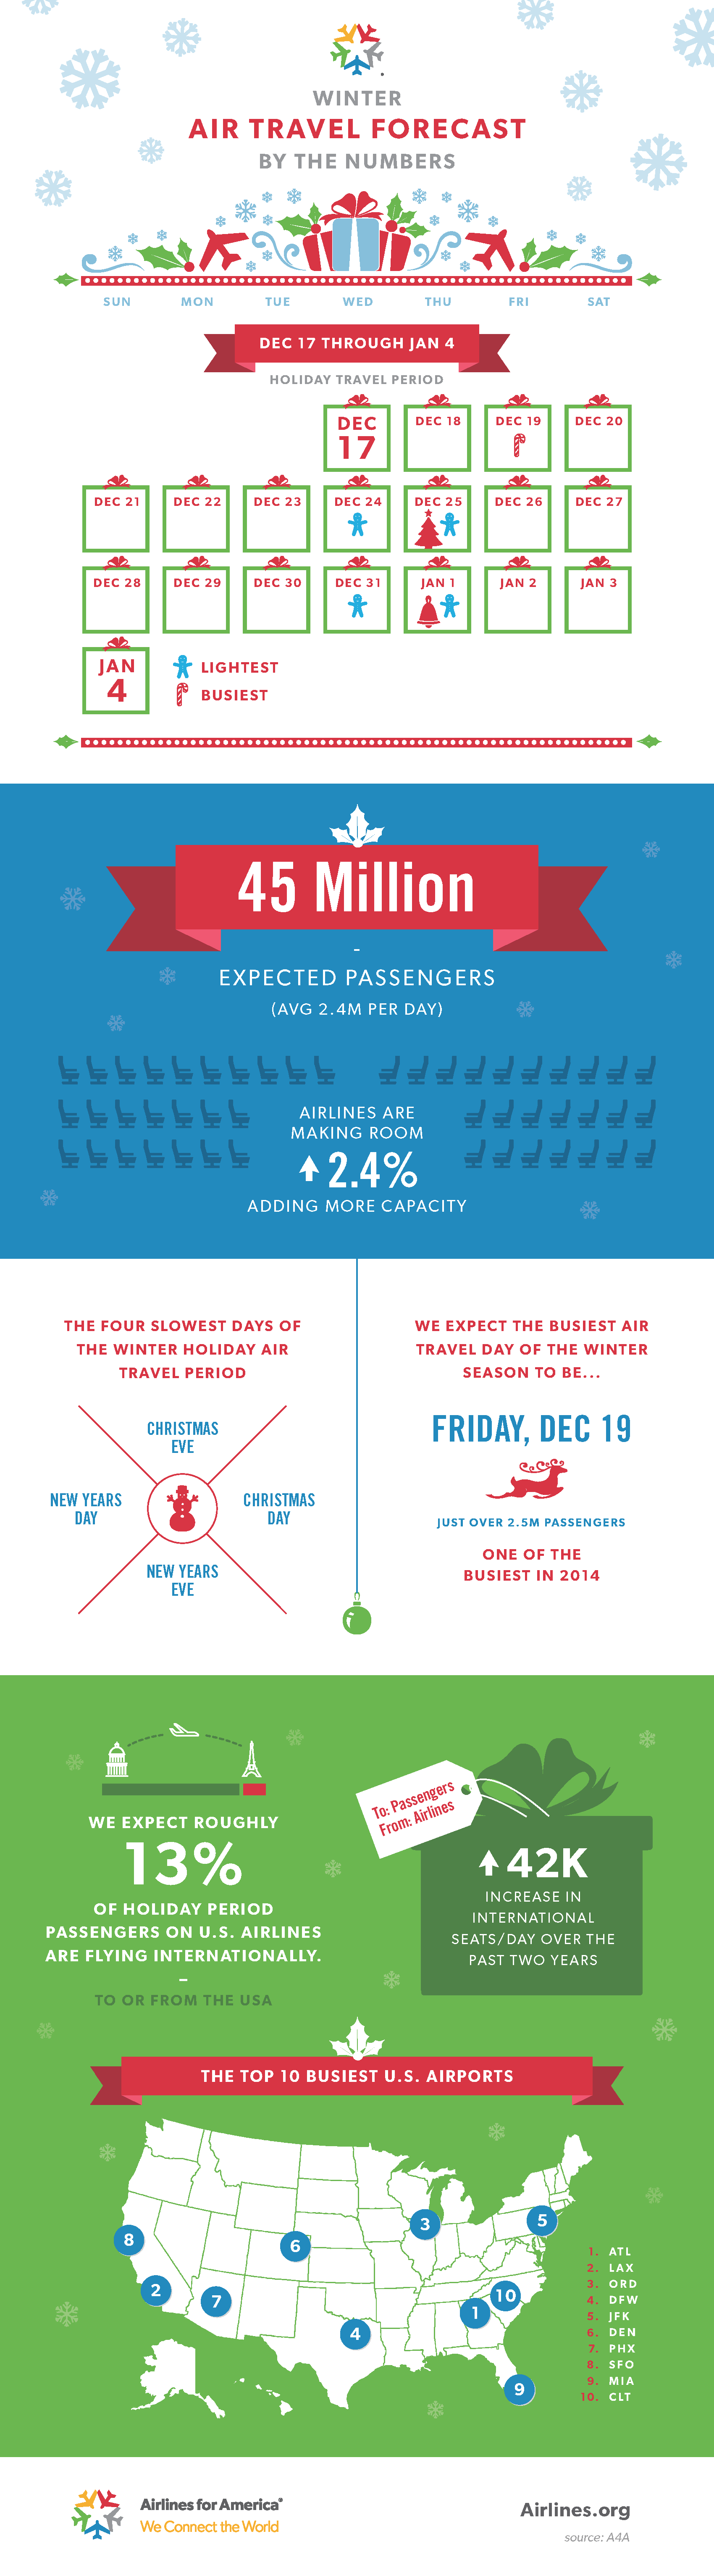 2014-2015 Winter Air Travel Forecast By the Numbers